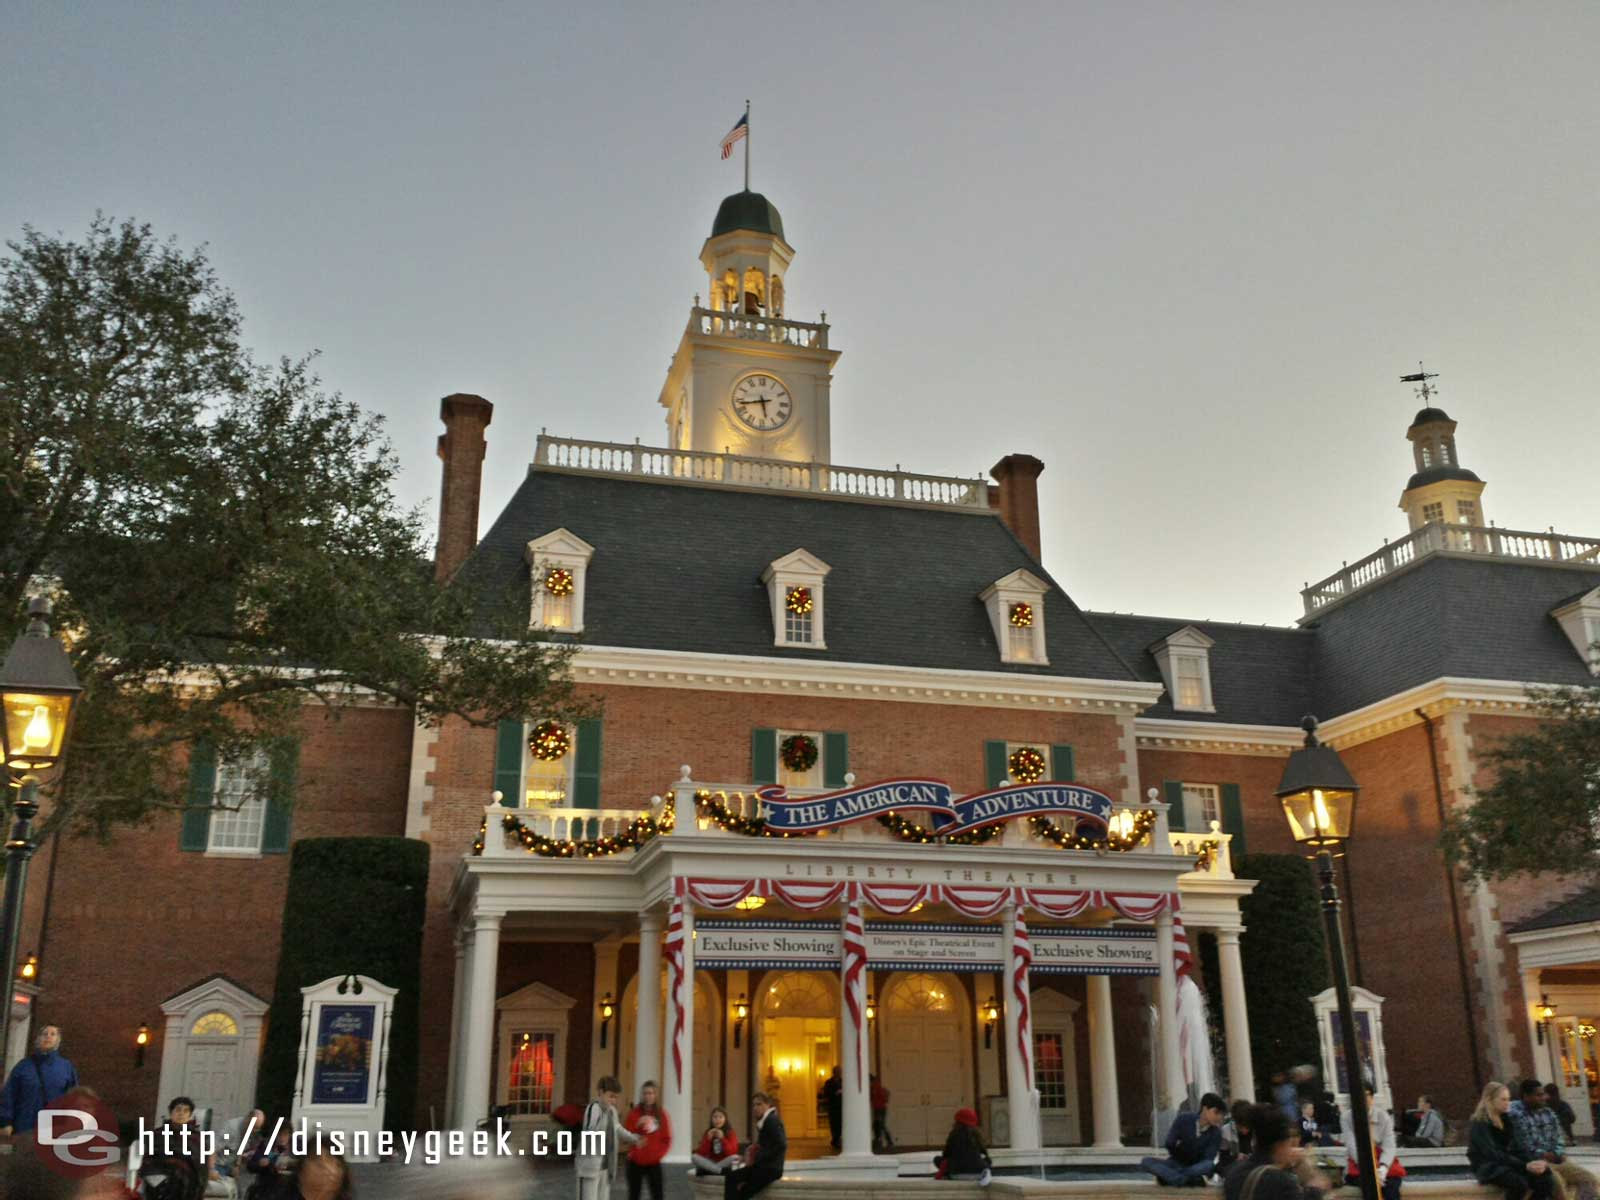 The American Adventure facade #Epcot